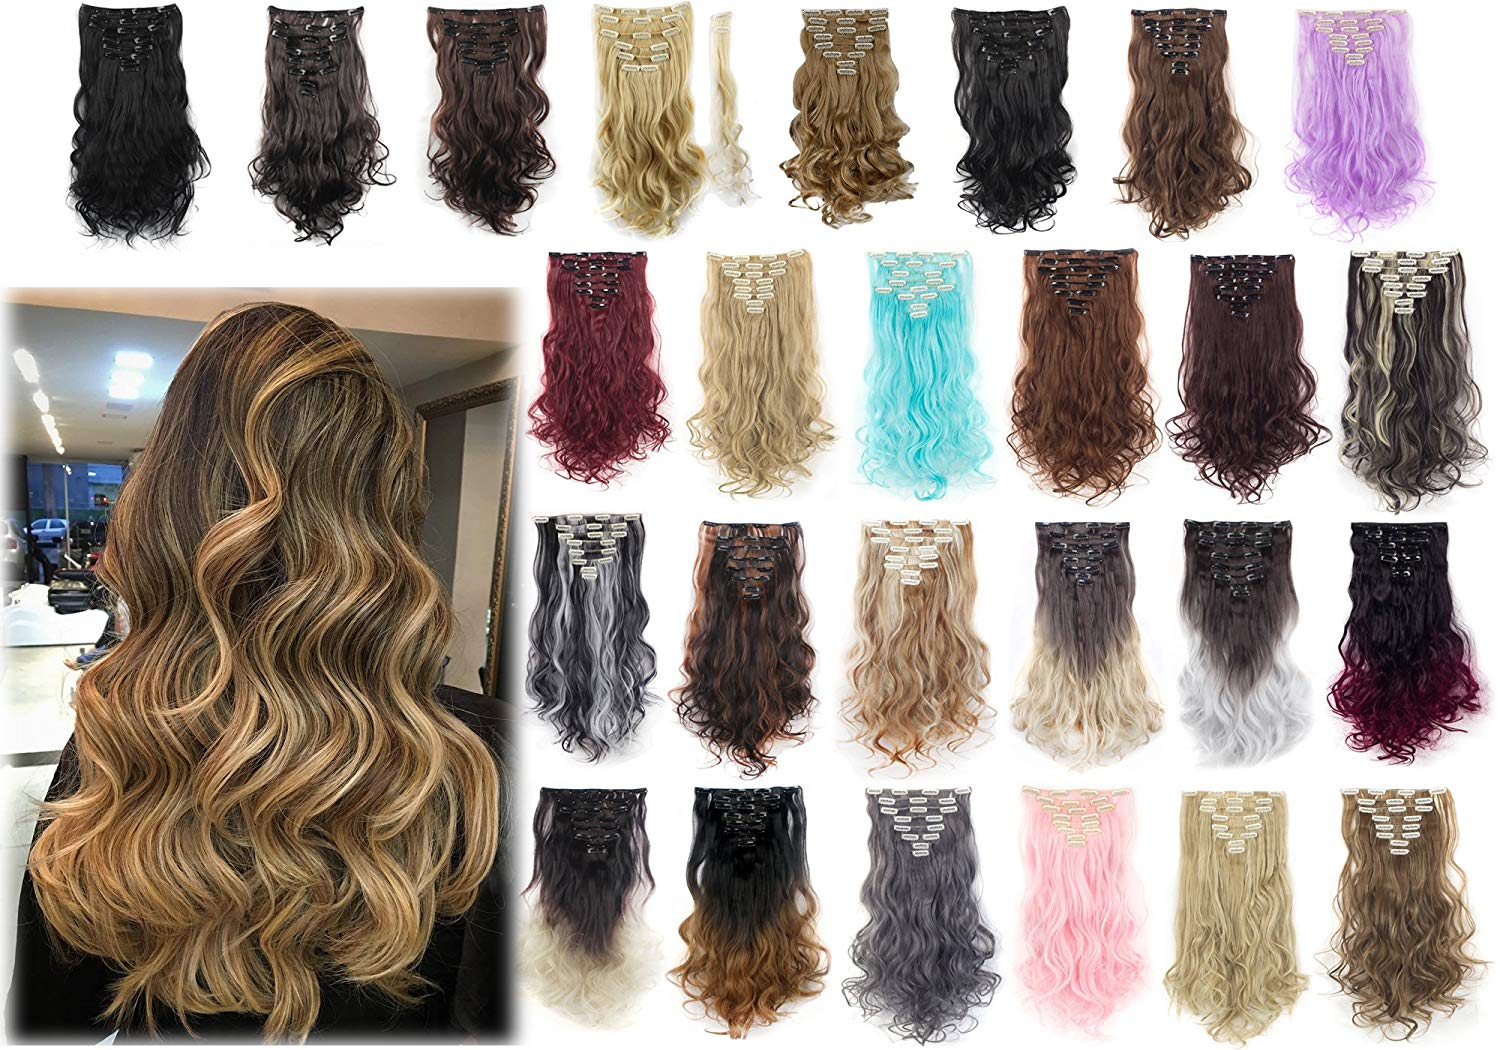 Cheap Hair Extensions For Girls Find Hair Extensions For Girls